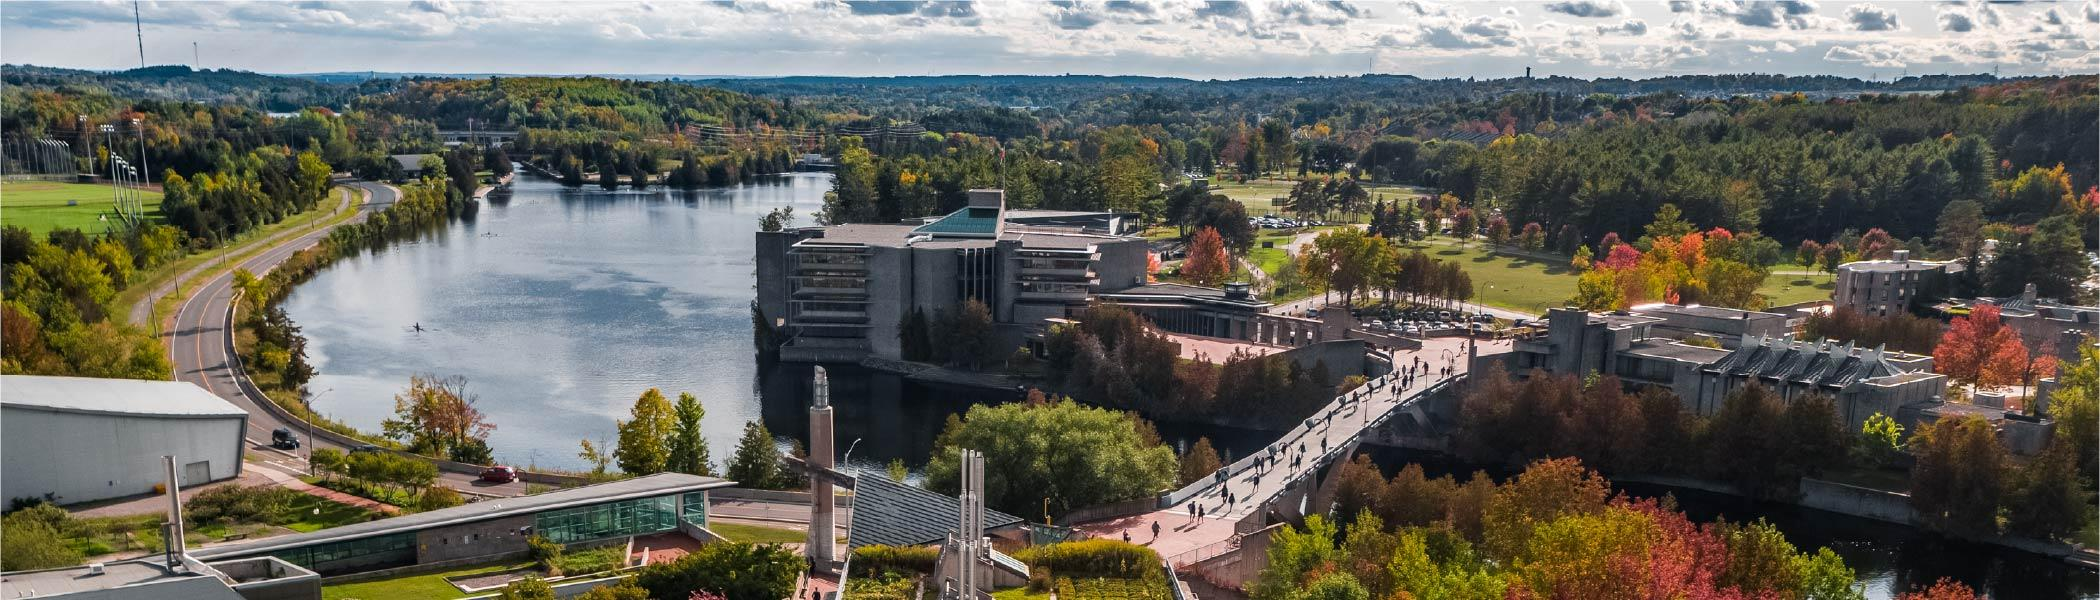 Aerial photograph of Trent University. Faryon bridge in foreground, Otonabee river in left third, and Bata Library Centre.